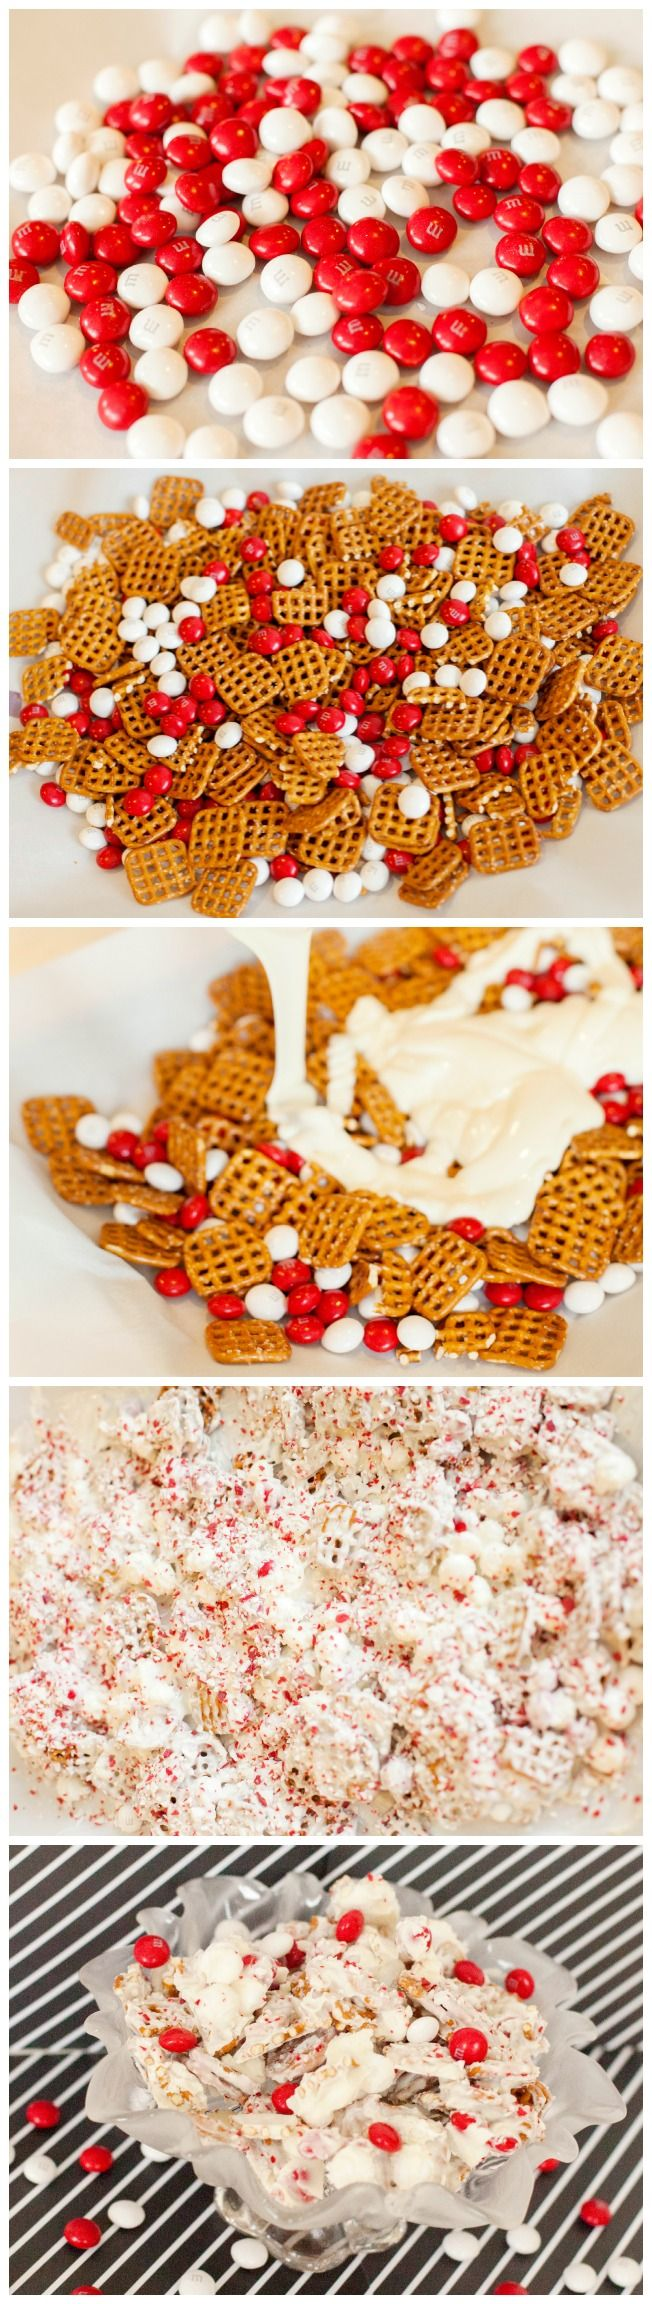 Here's a delicious and easy sweet snack for the Christmas / Holiday season! This Peppermint Bark recipe also makes a great gift for friends, teachers, or neighbors! KristenDuke.com